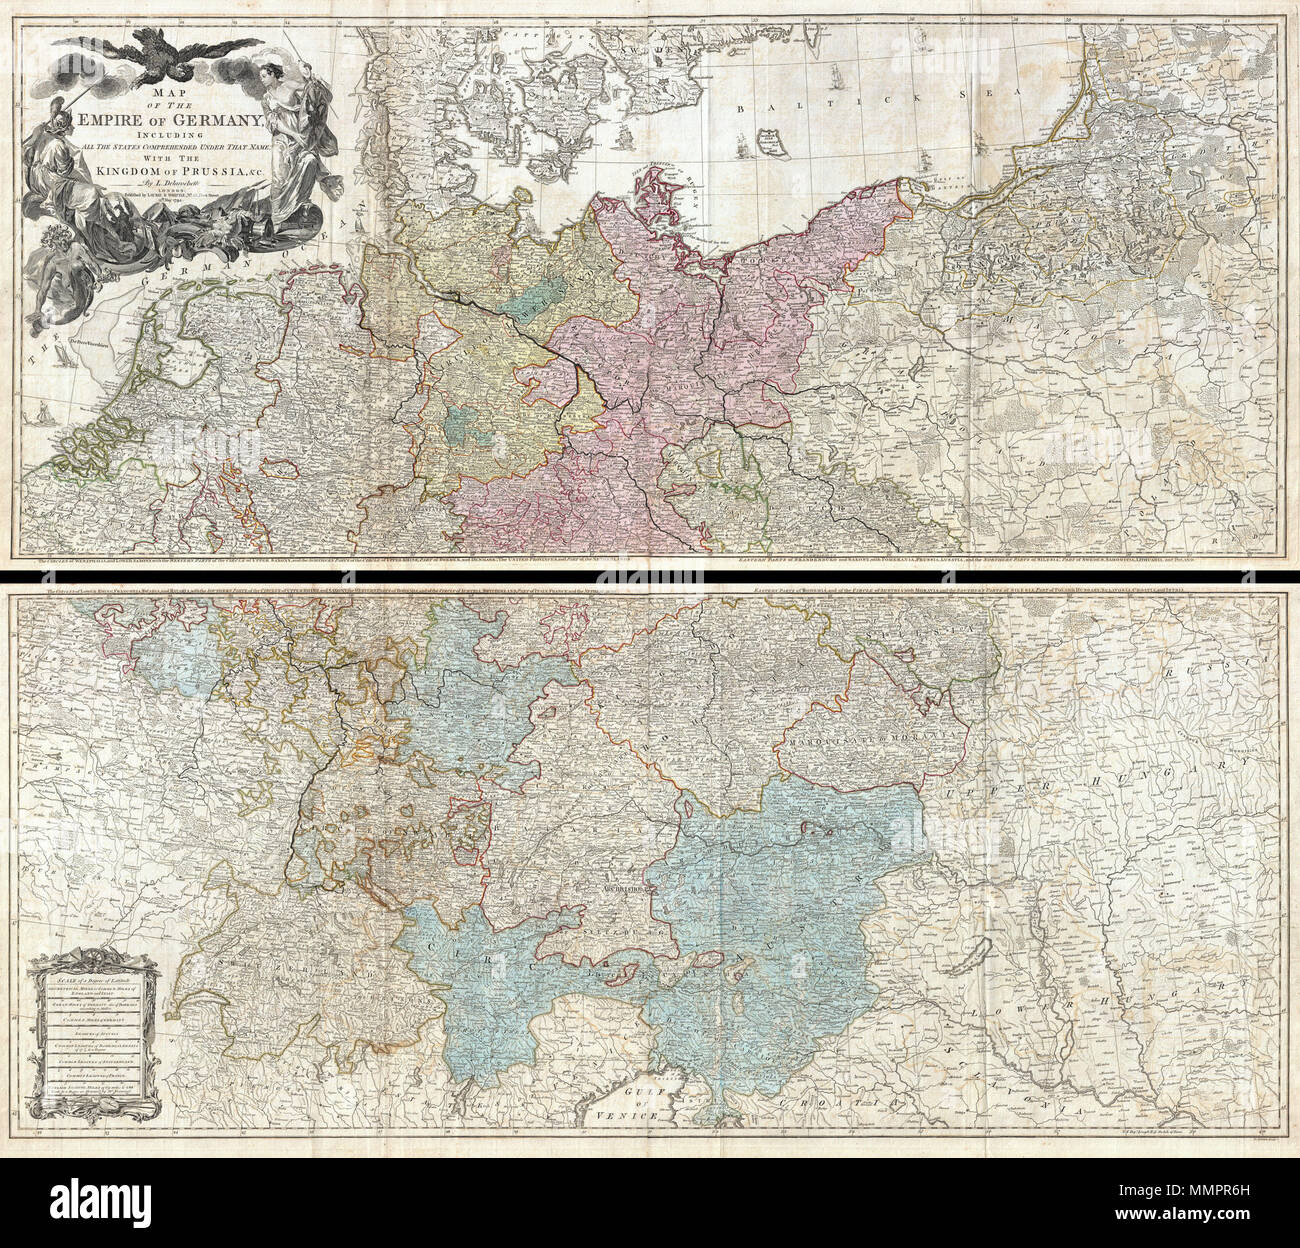 english an absolutely stunning and monumental two panel 1794 wall map of germany bohemia austria and prussia by louis stanislas darcy delarochette